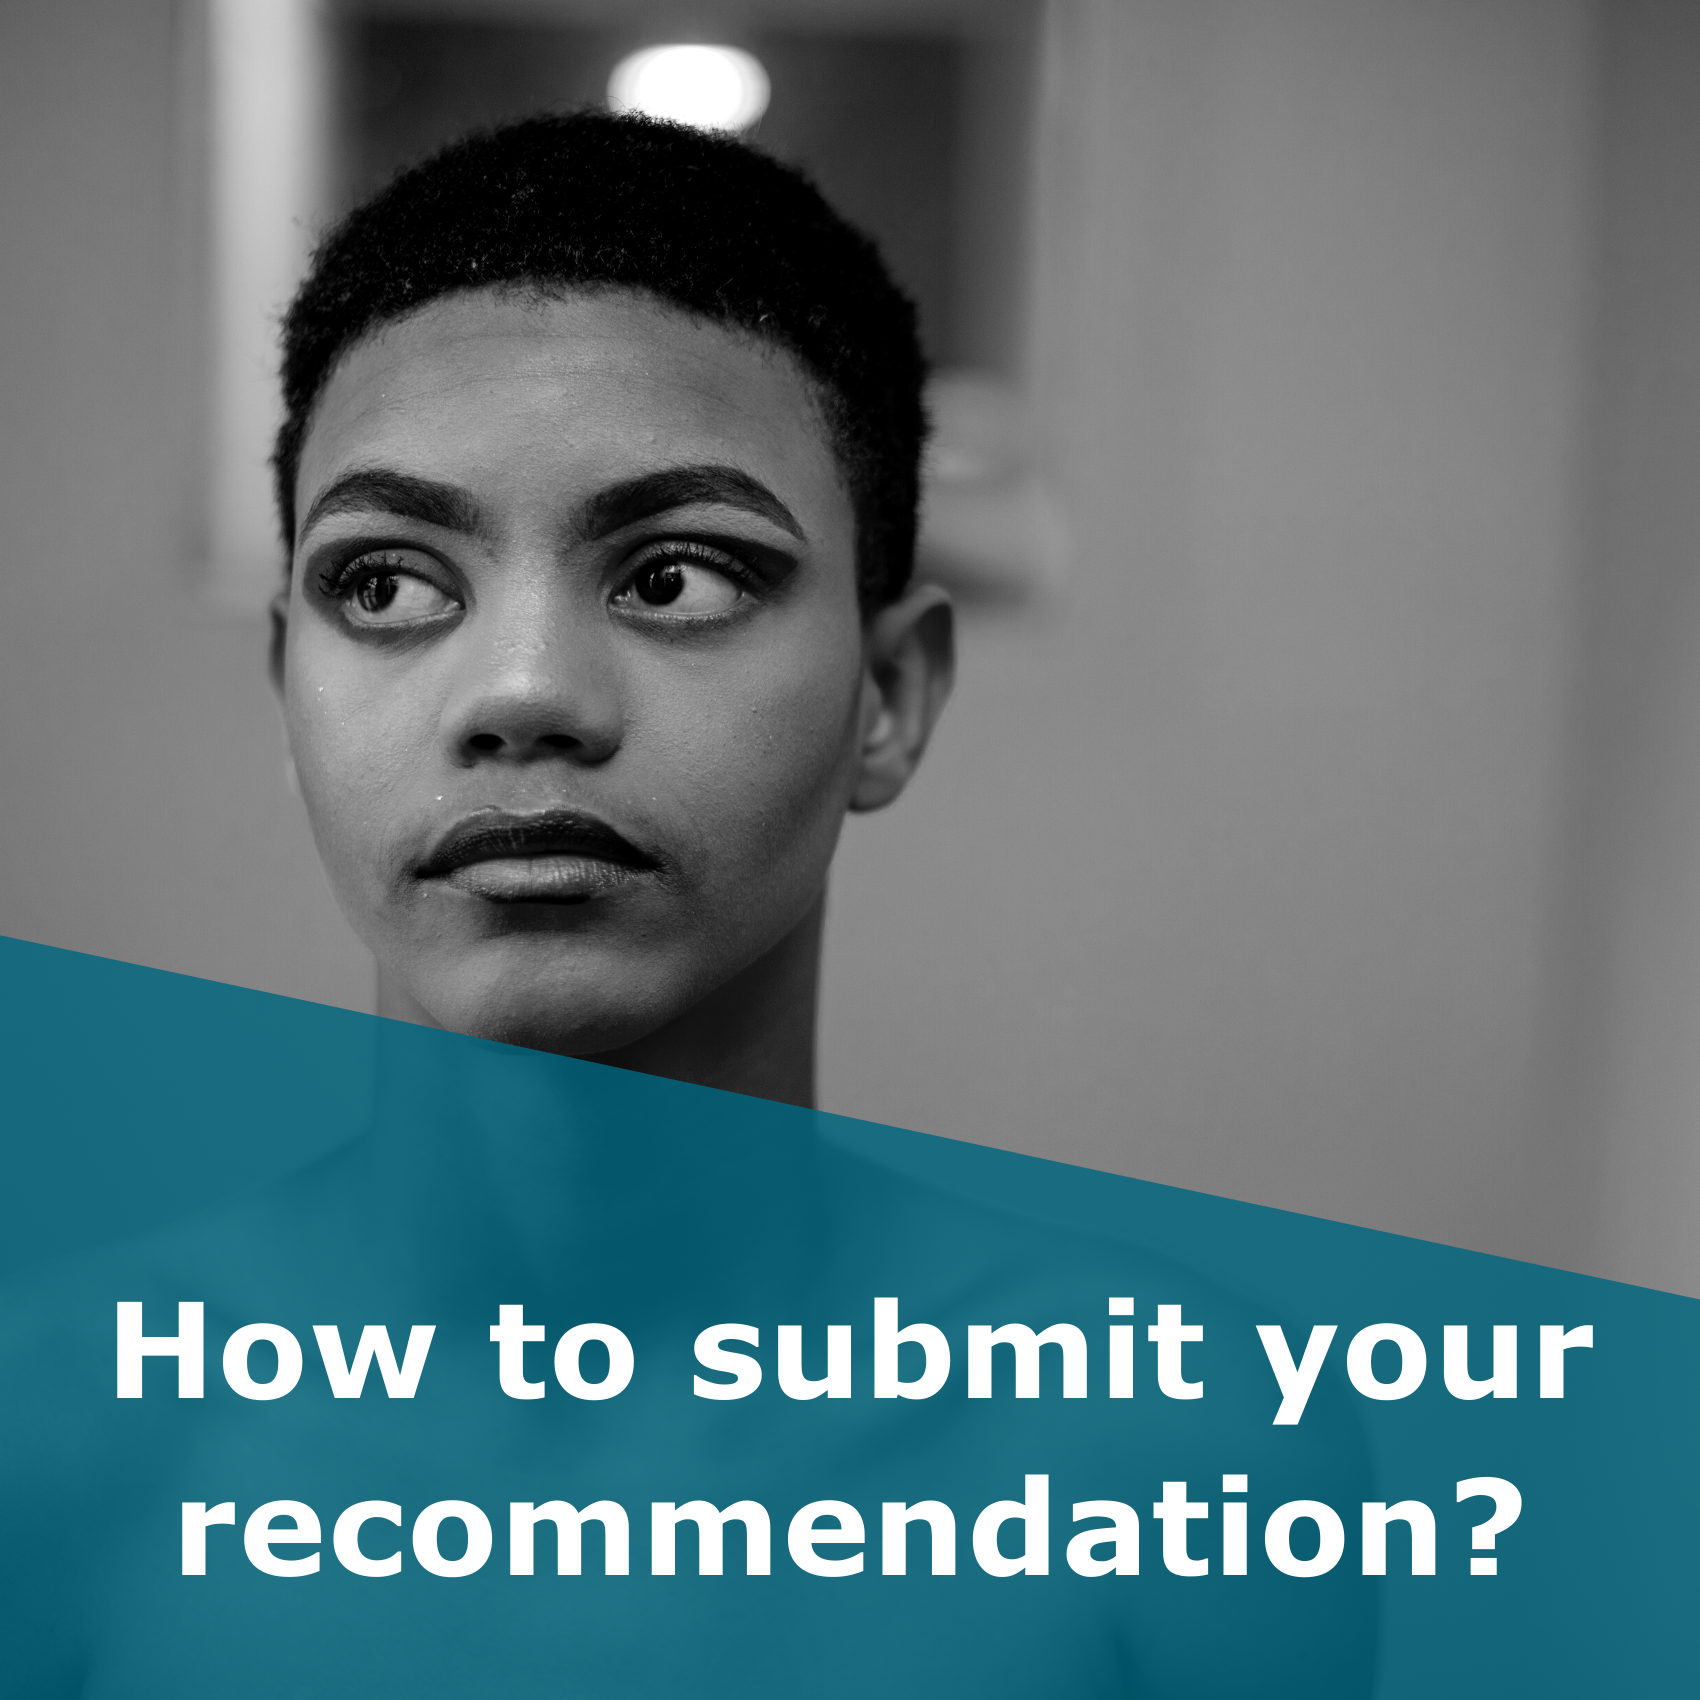 How to submit your recommendation?